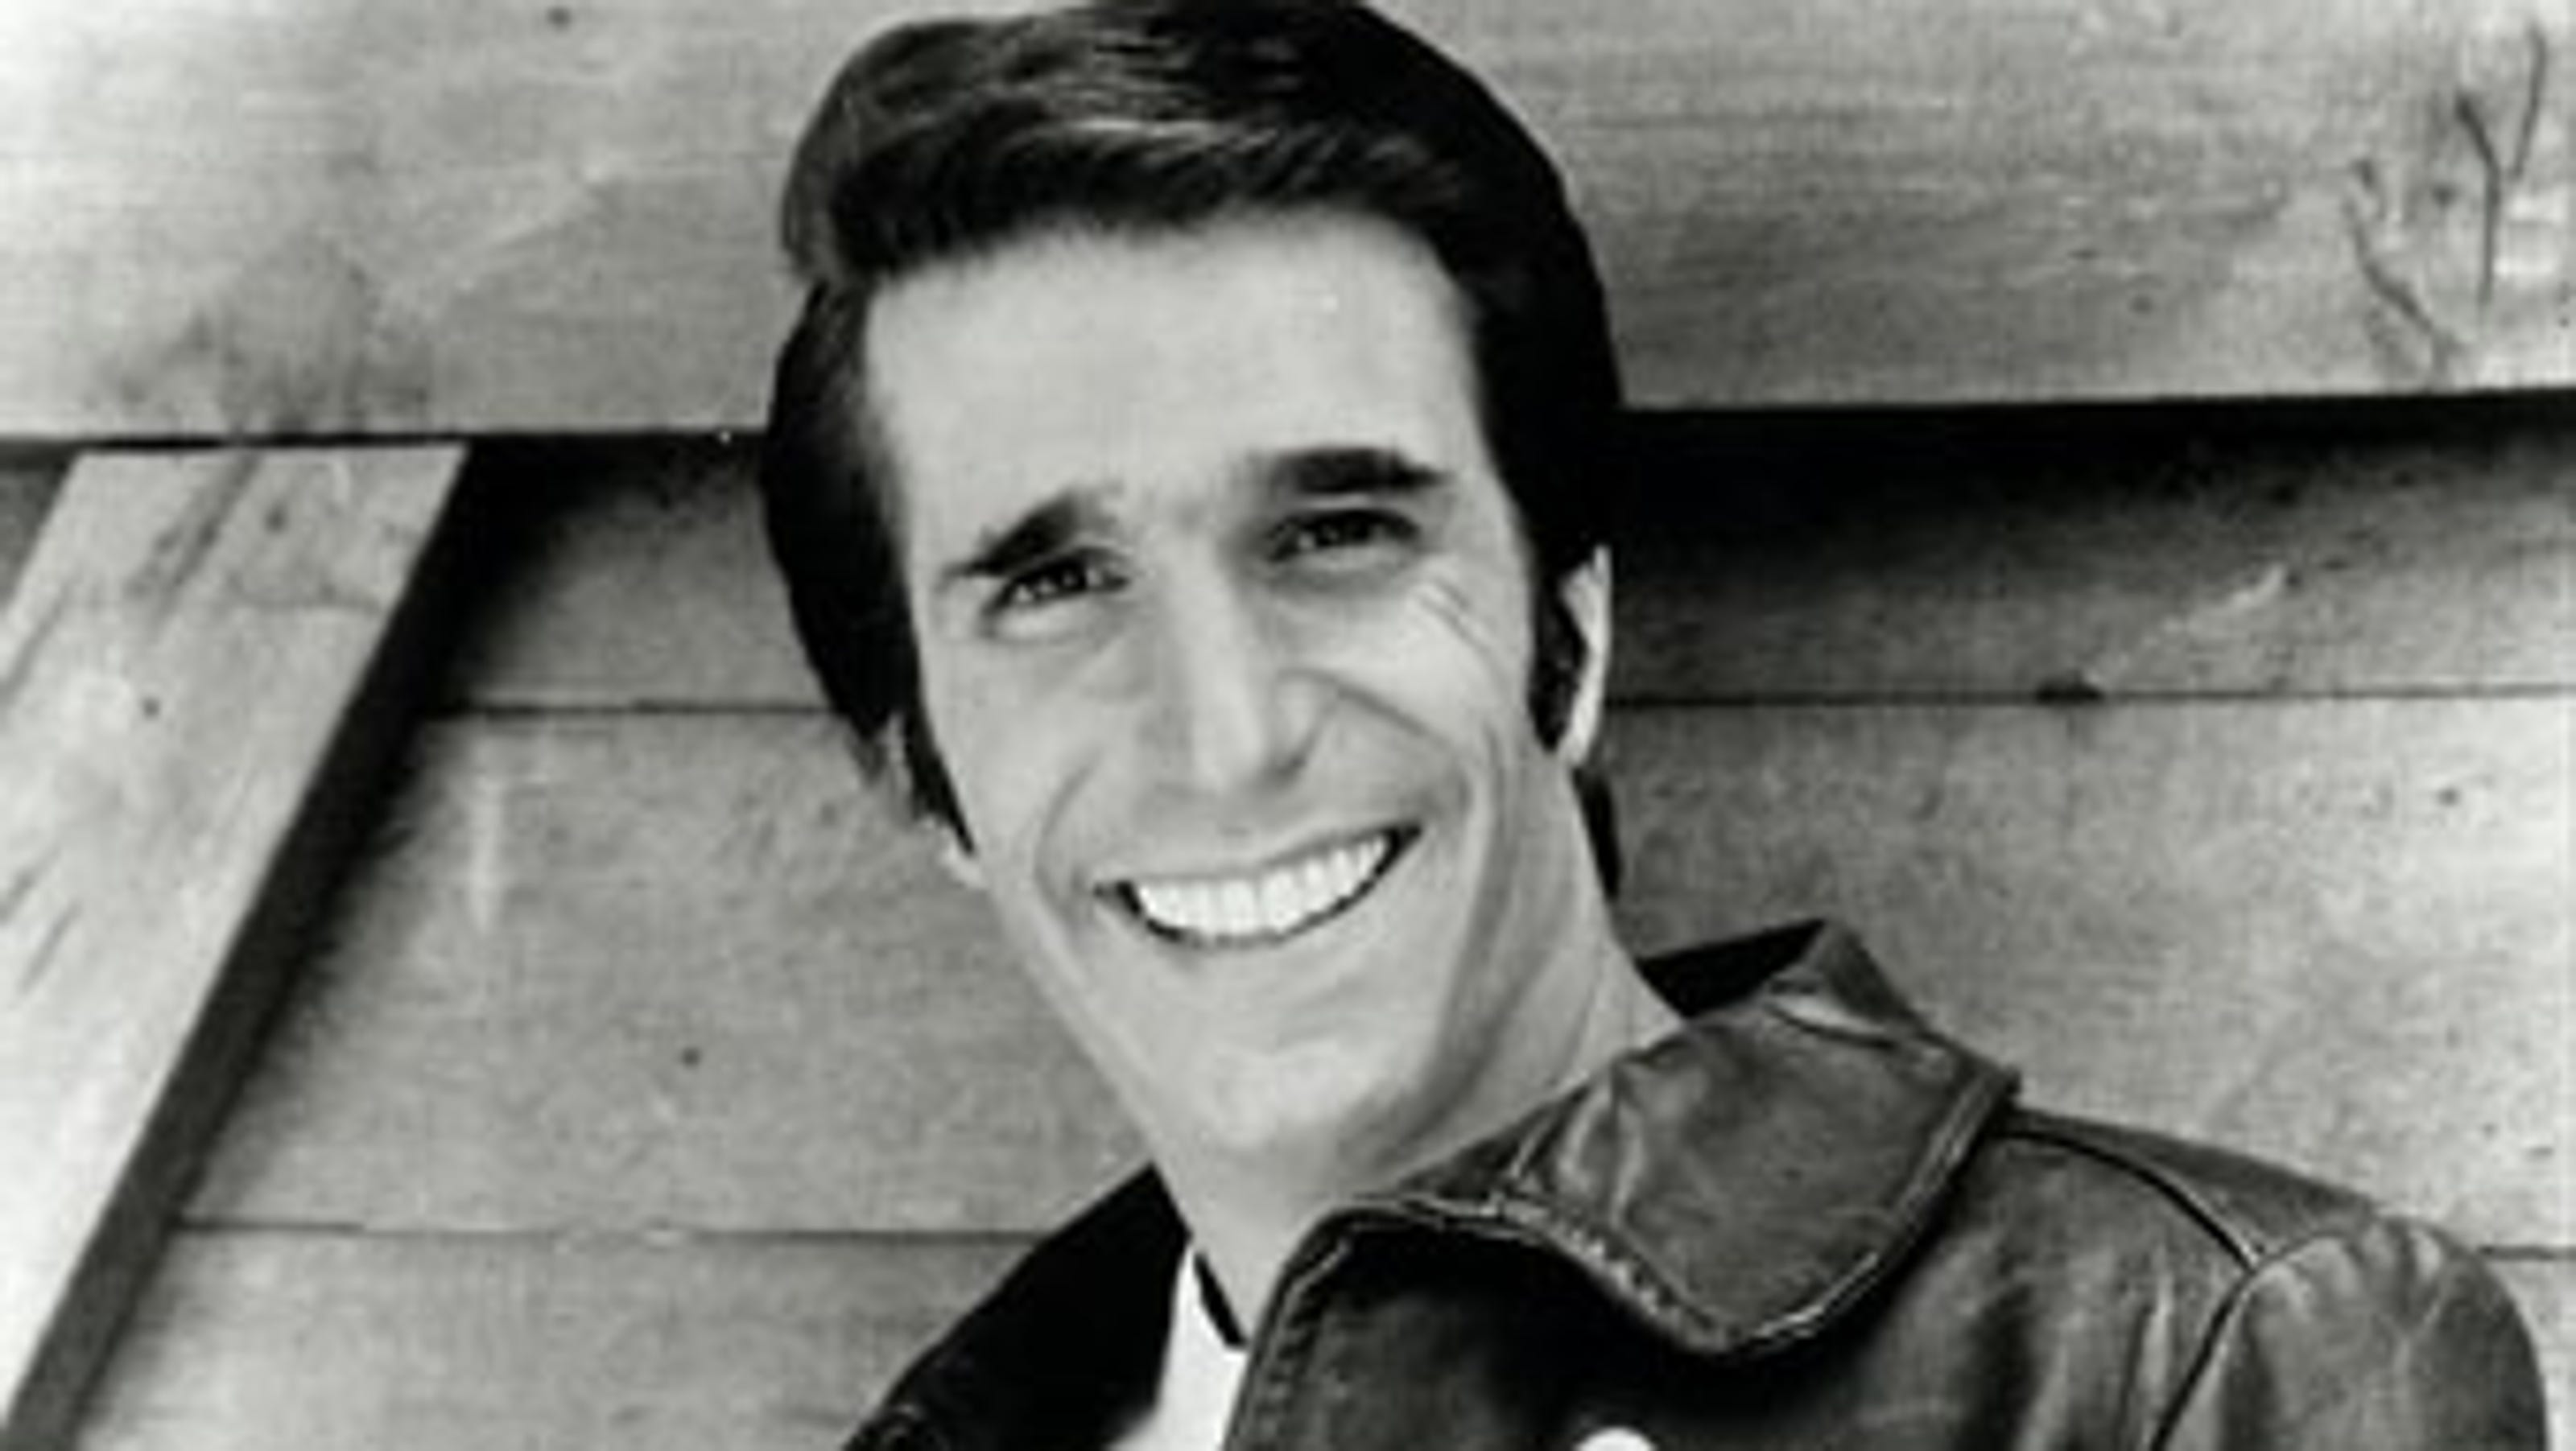 Henry winkler divorced - Aaaayyyy The Fonz Is Coming To Carmel Indianapolis Star Henry Winkler Best Known As Arthur Fonzarelli In The 1970s American Sitcom Happy Days Will Come